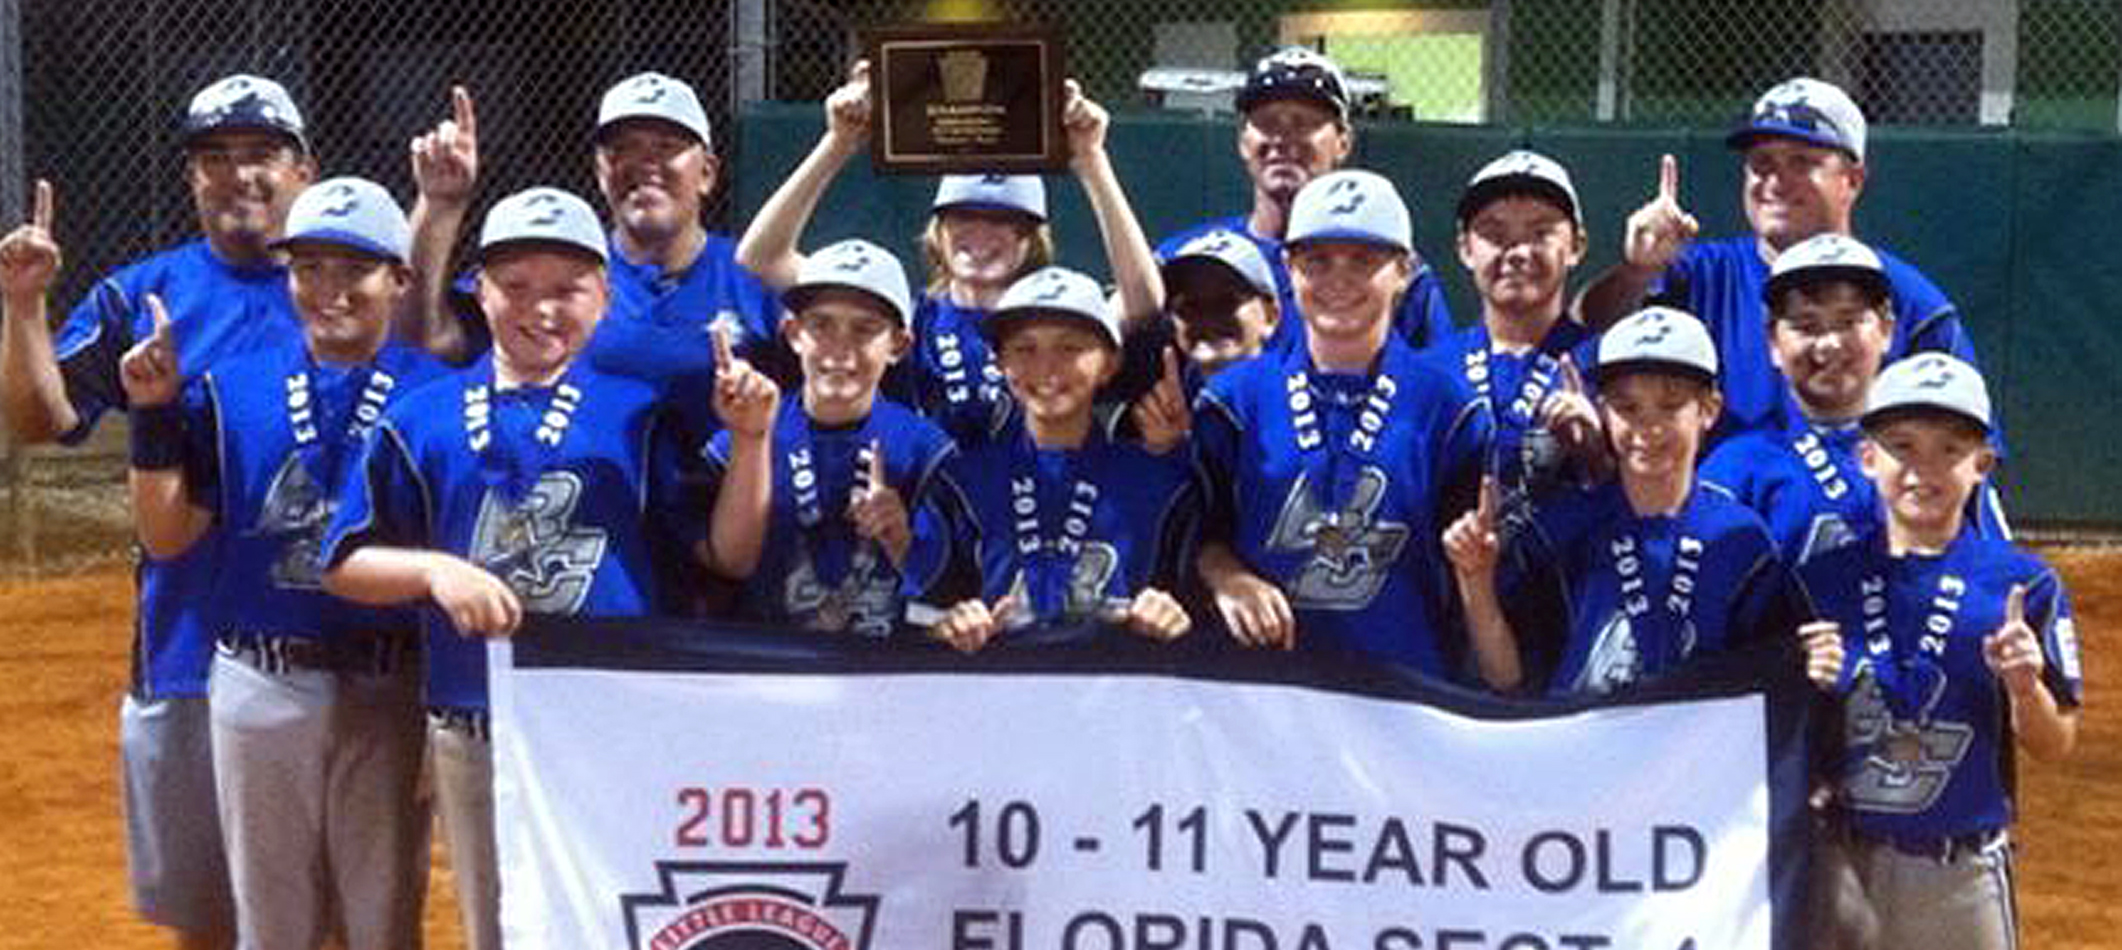 Buffalo Creek 10 11 All Stars Win Section 4 Little League Tournament HT Preps